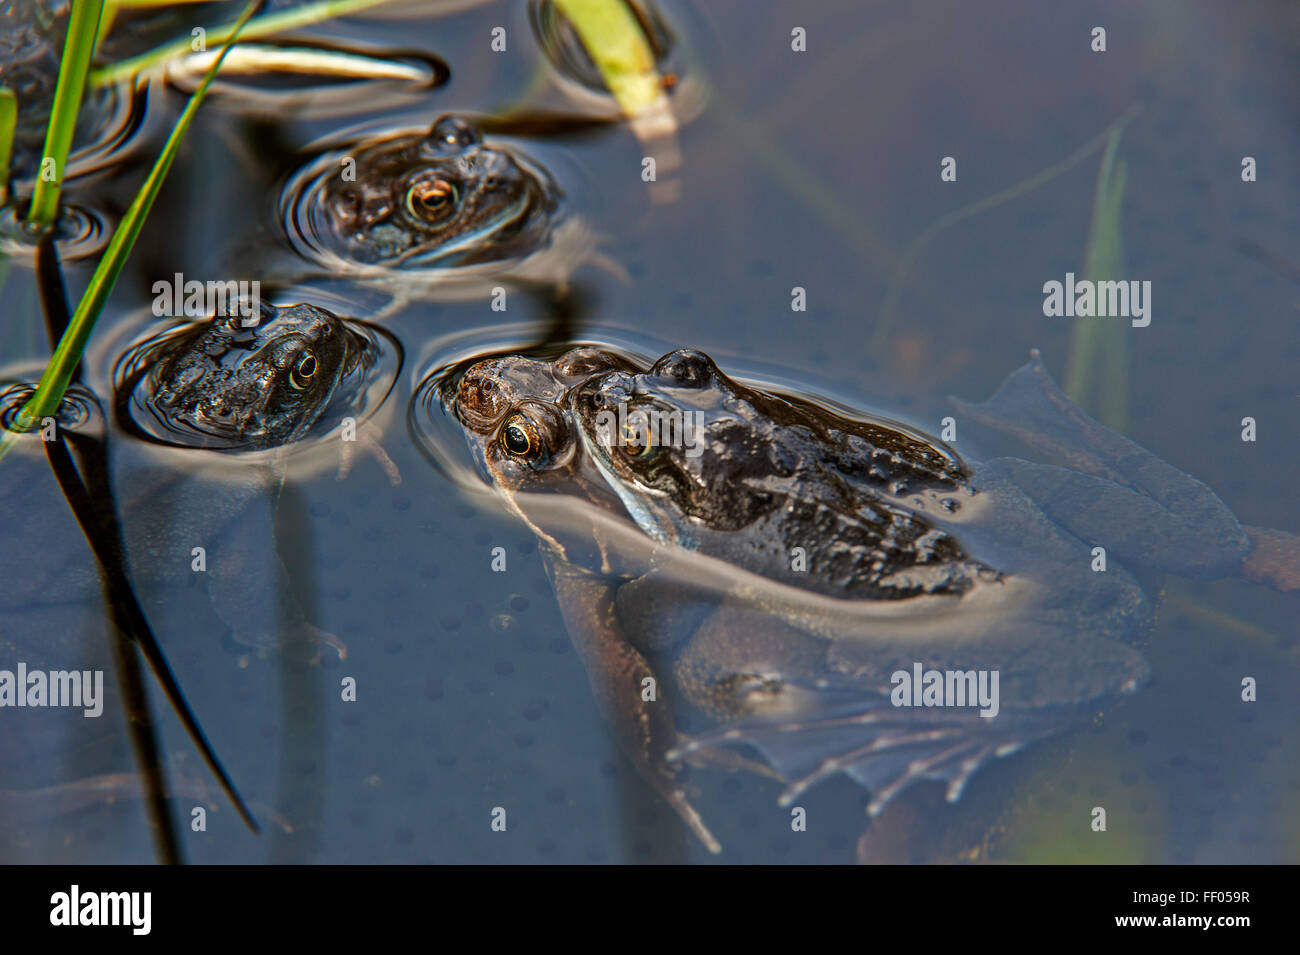 European common brown frogs (Rana temporaria) pair in amplexus floating in pond among frog spawn - Stock Image